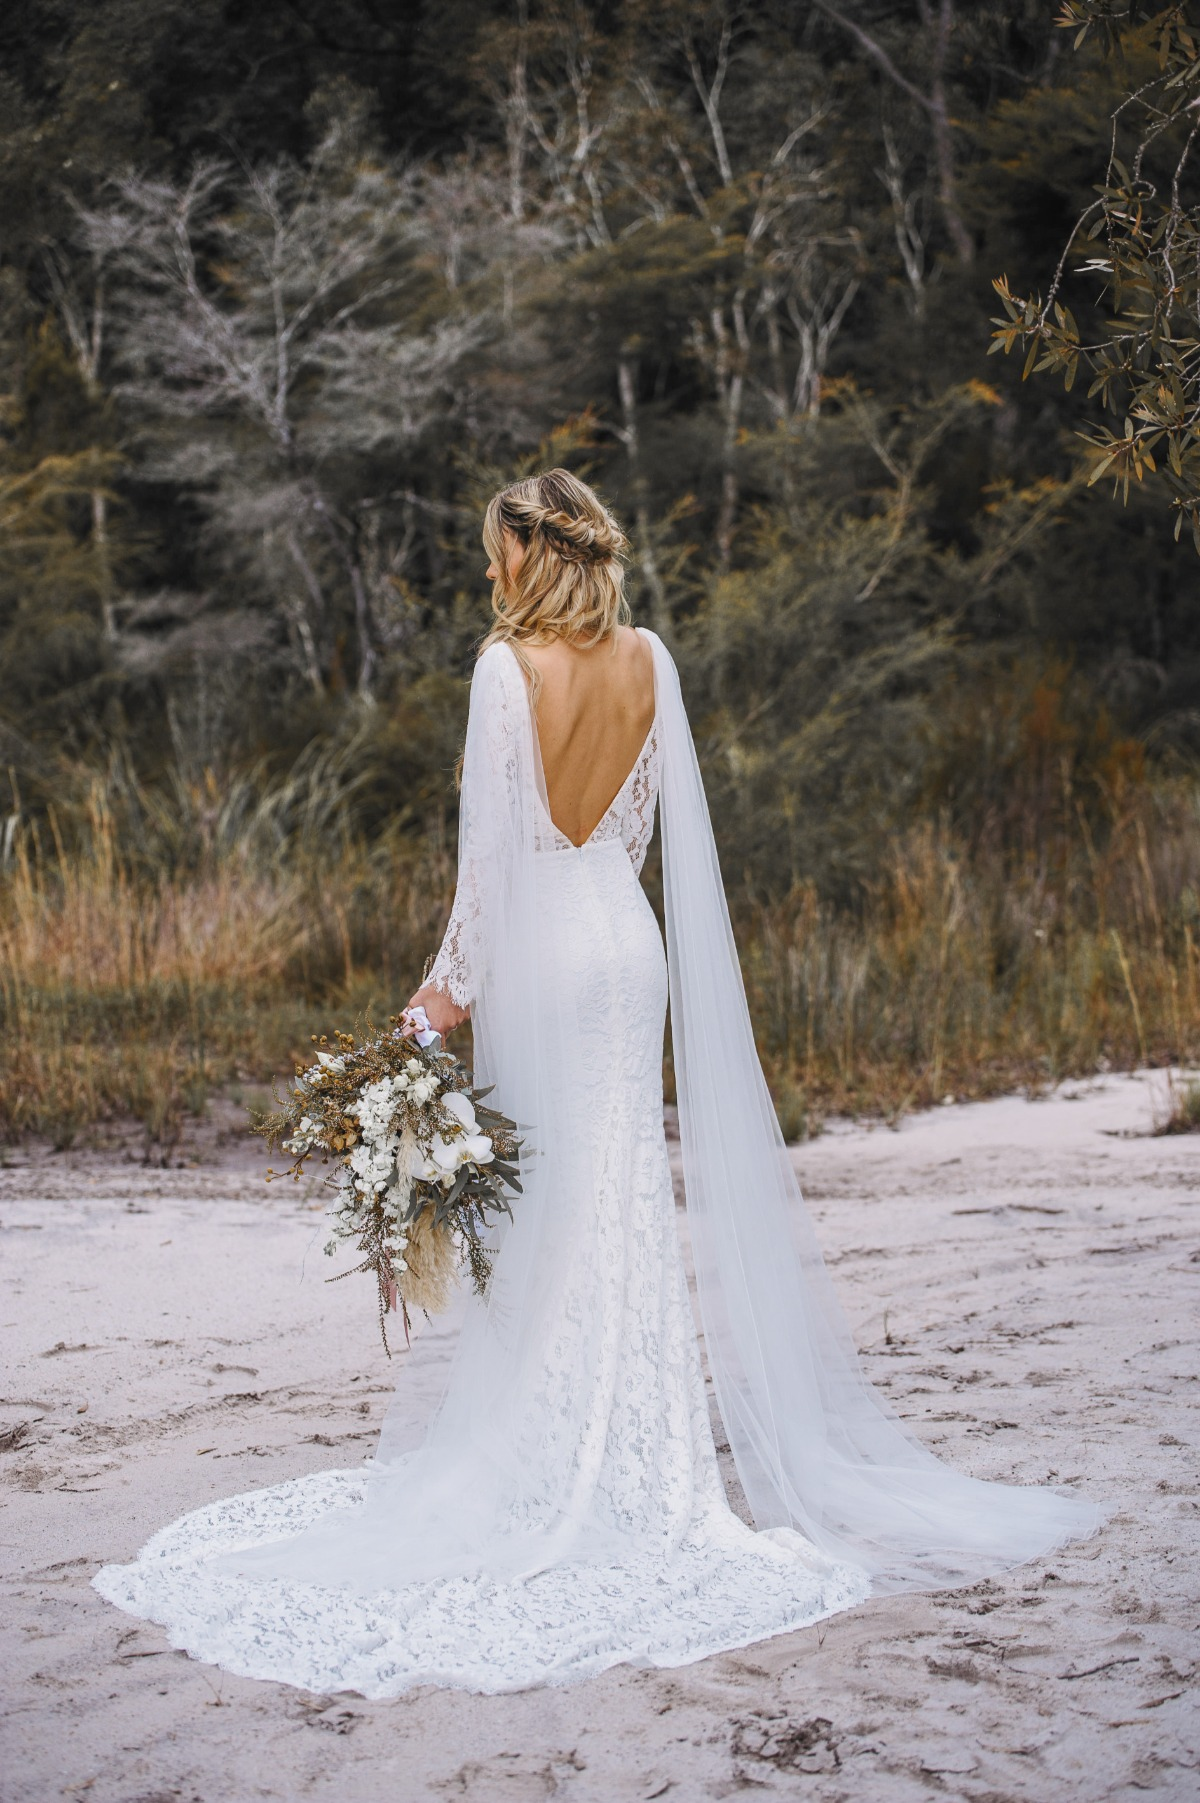 The Alysia gown by Goddess by Nature